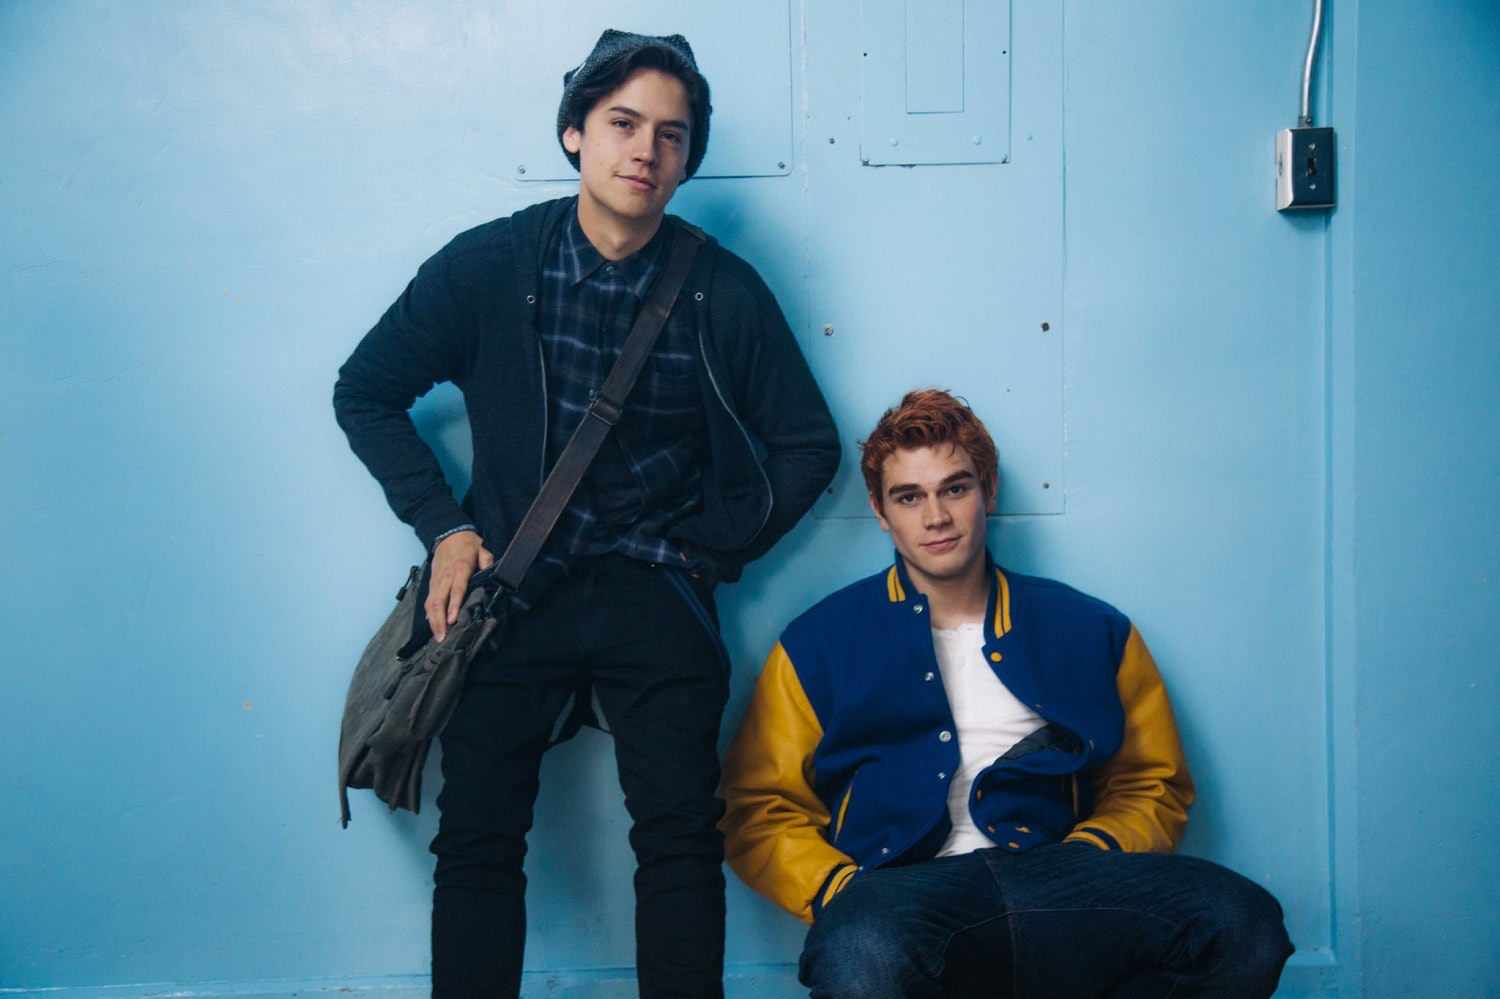 Meet the Cast of Cole Sprouse's New Show 'Riverdale'